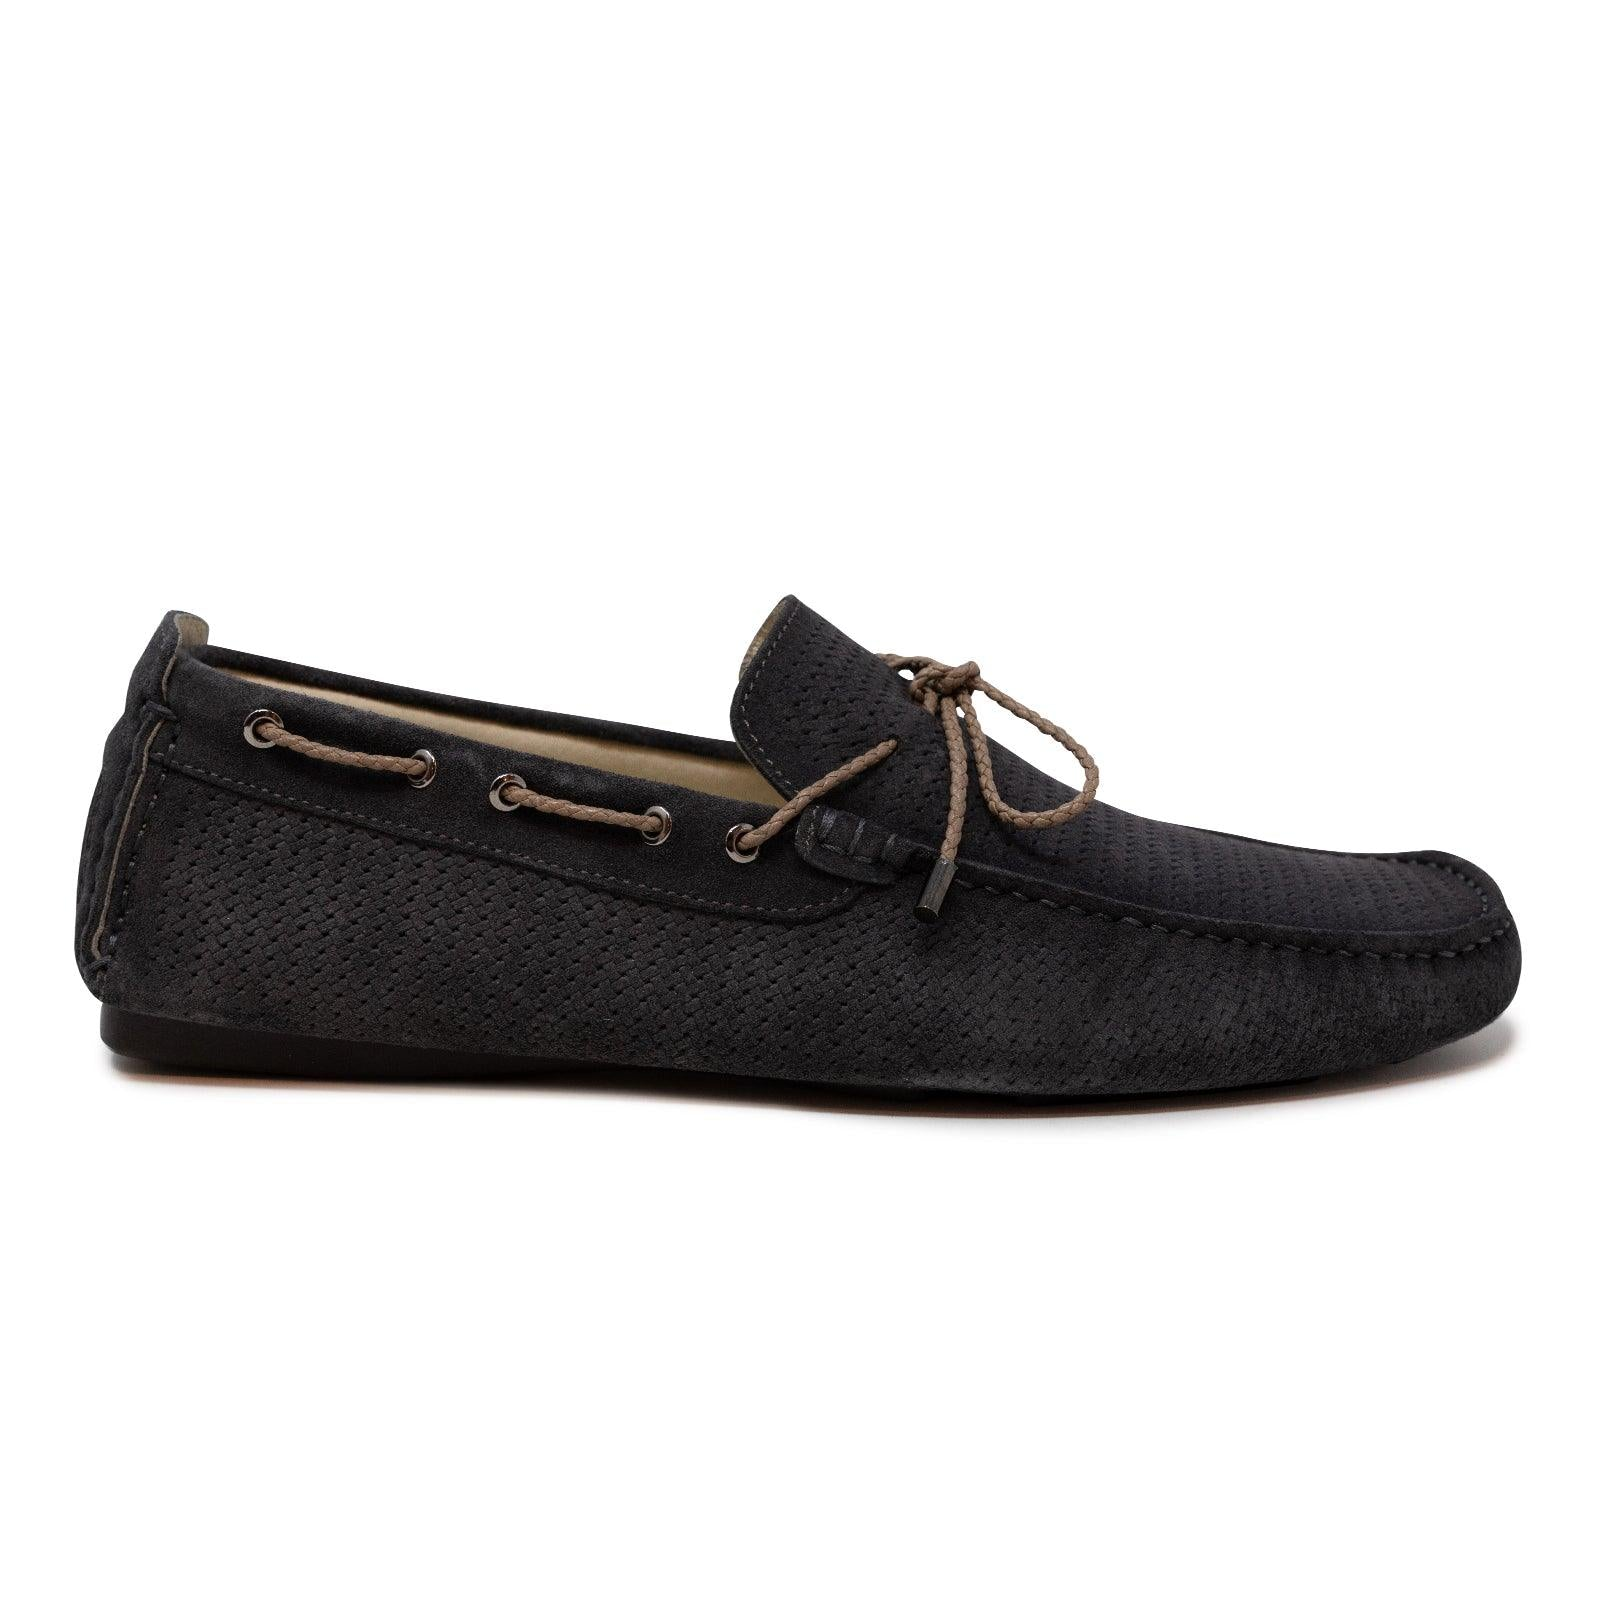 Men's Car Shoes in Velour Antracite Leather